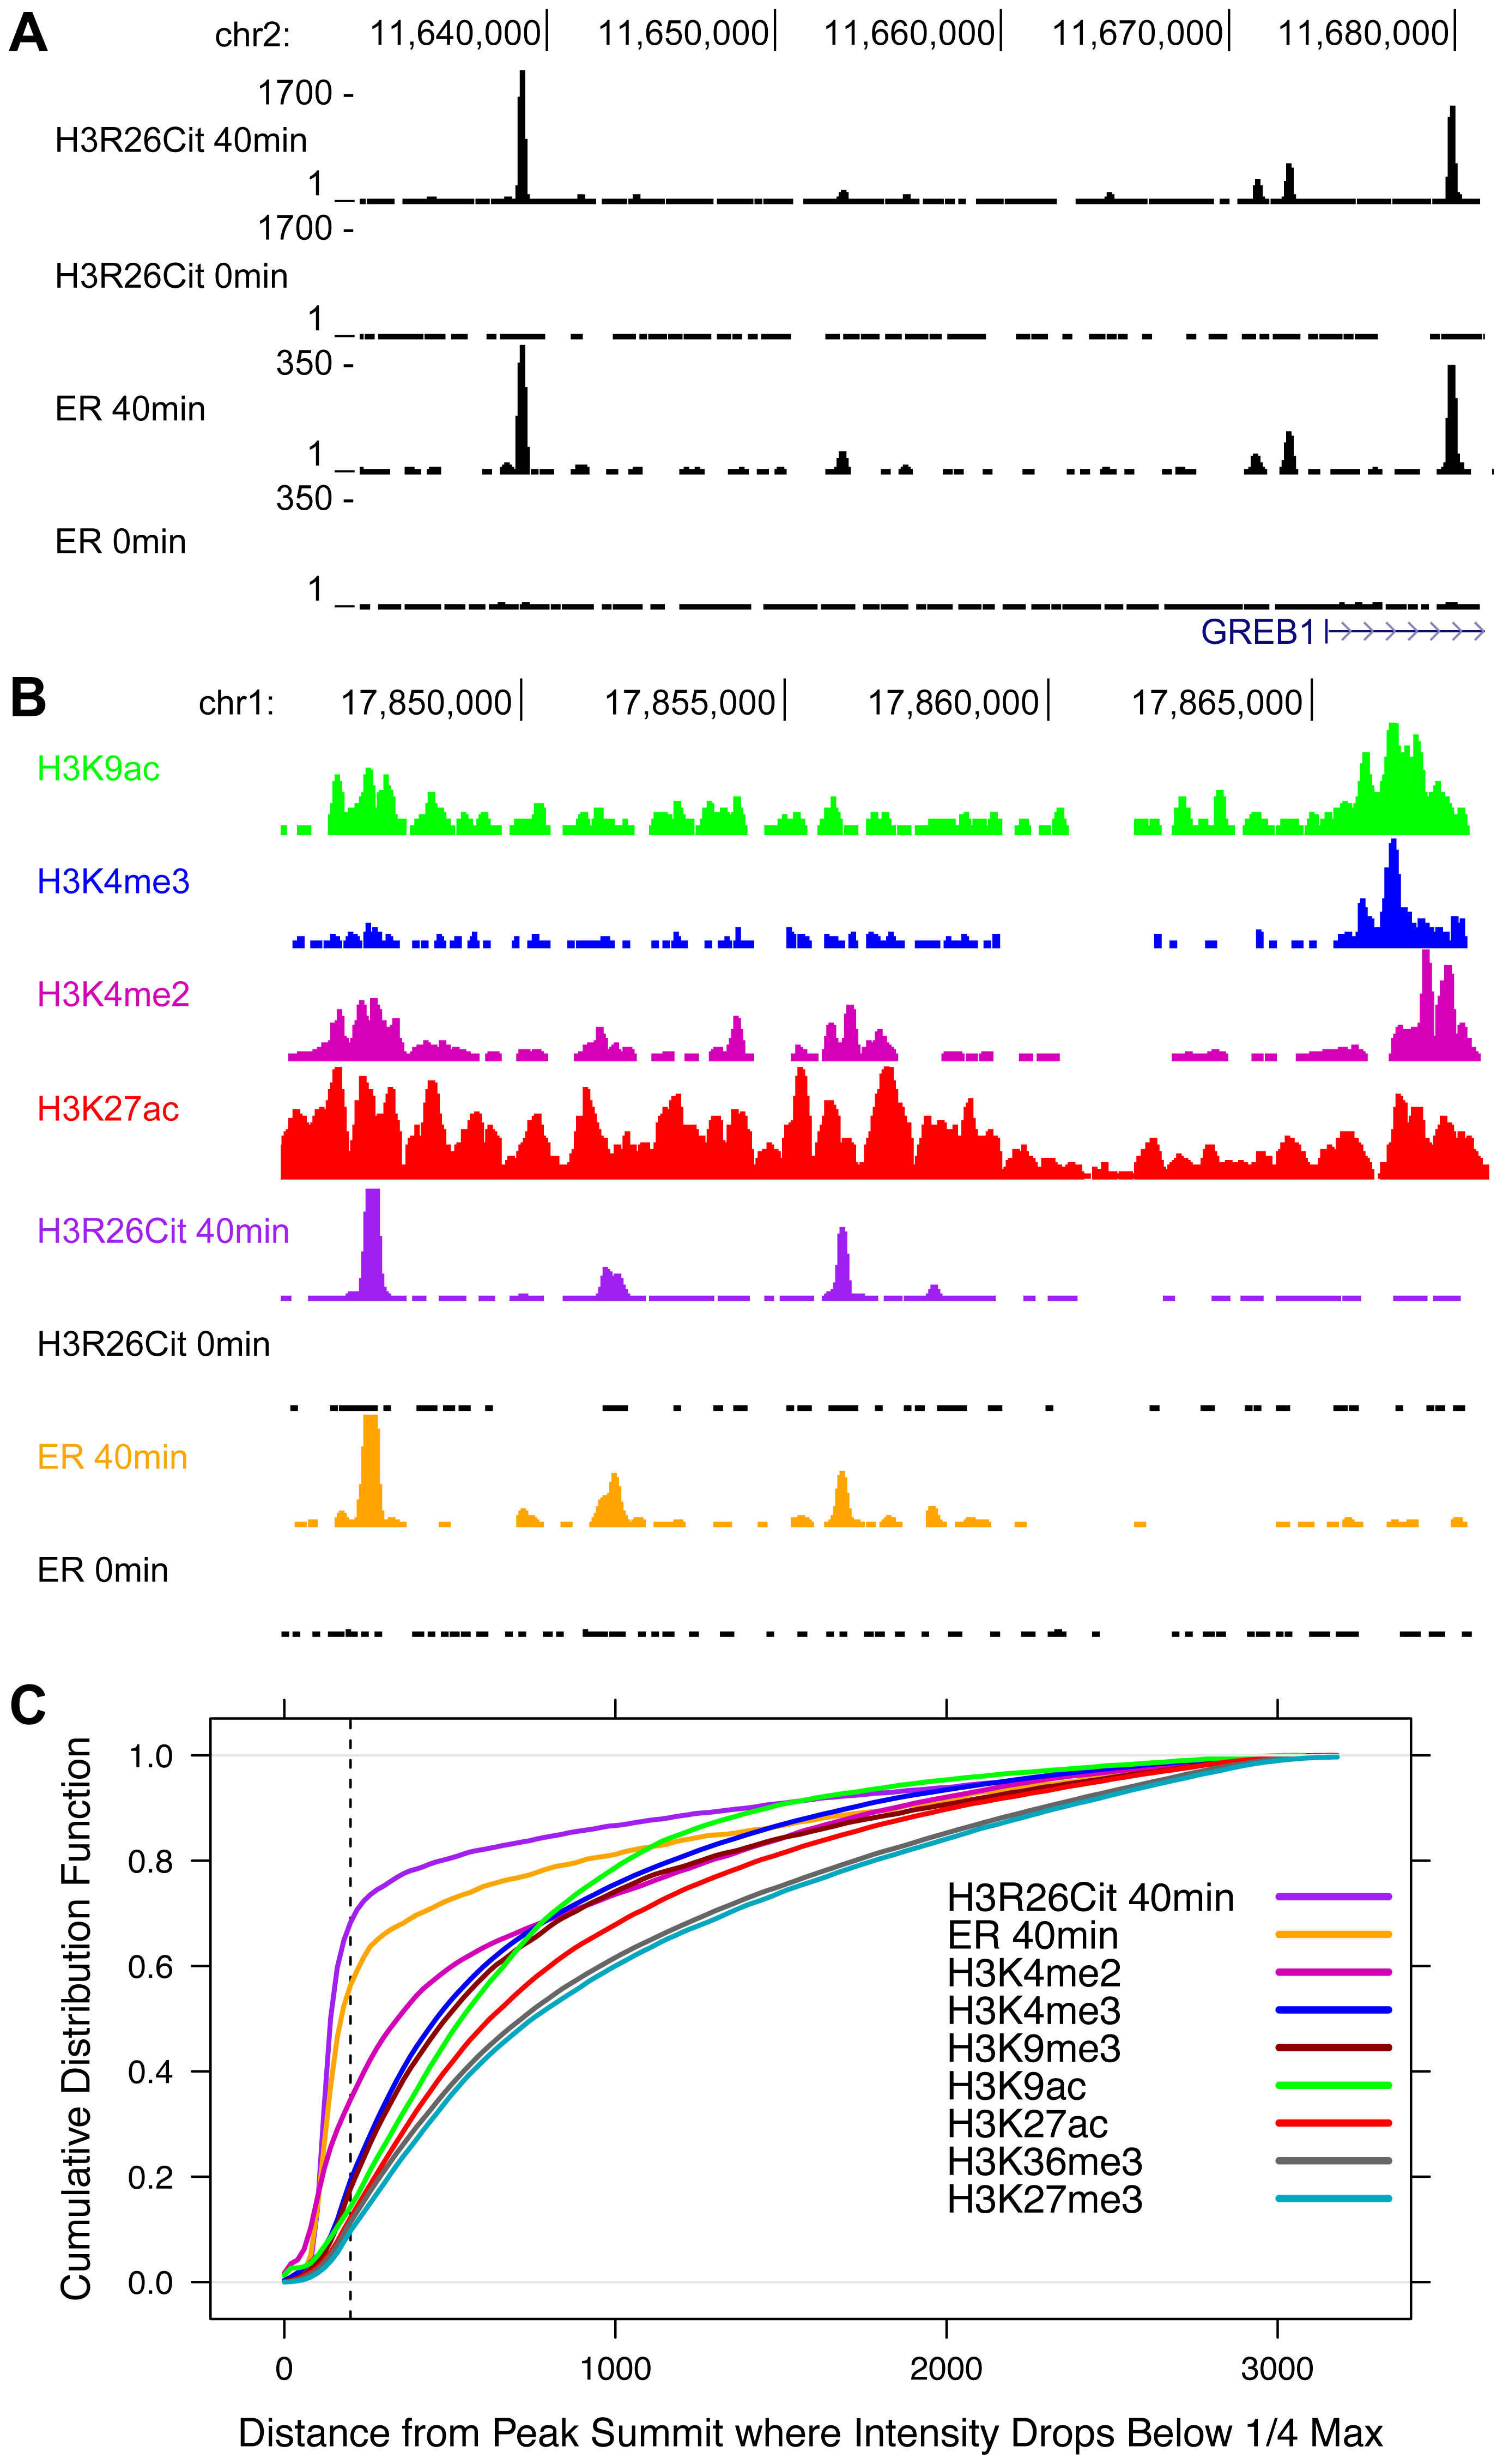 The genomic profile of H3R26Cit is uniquely discrete compared to other histone modifications.